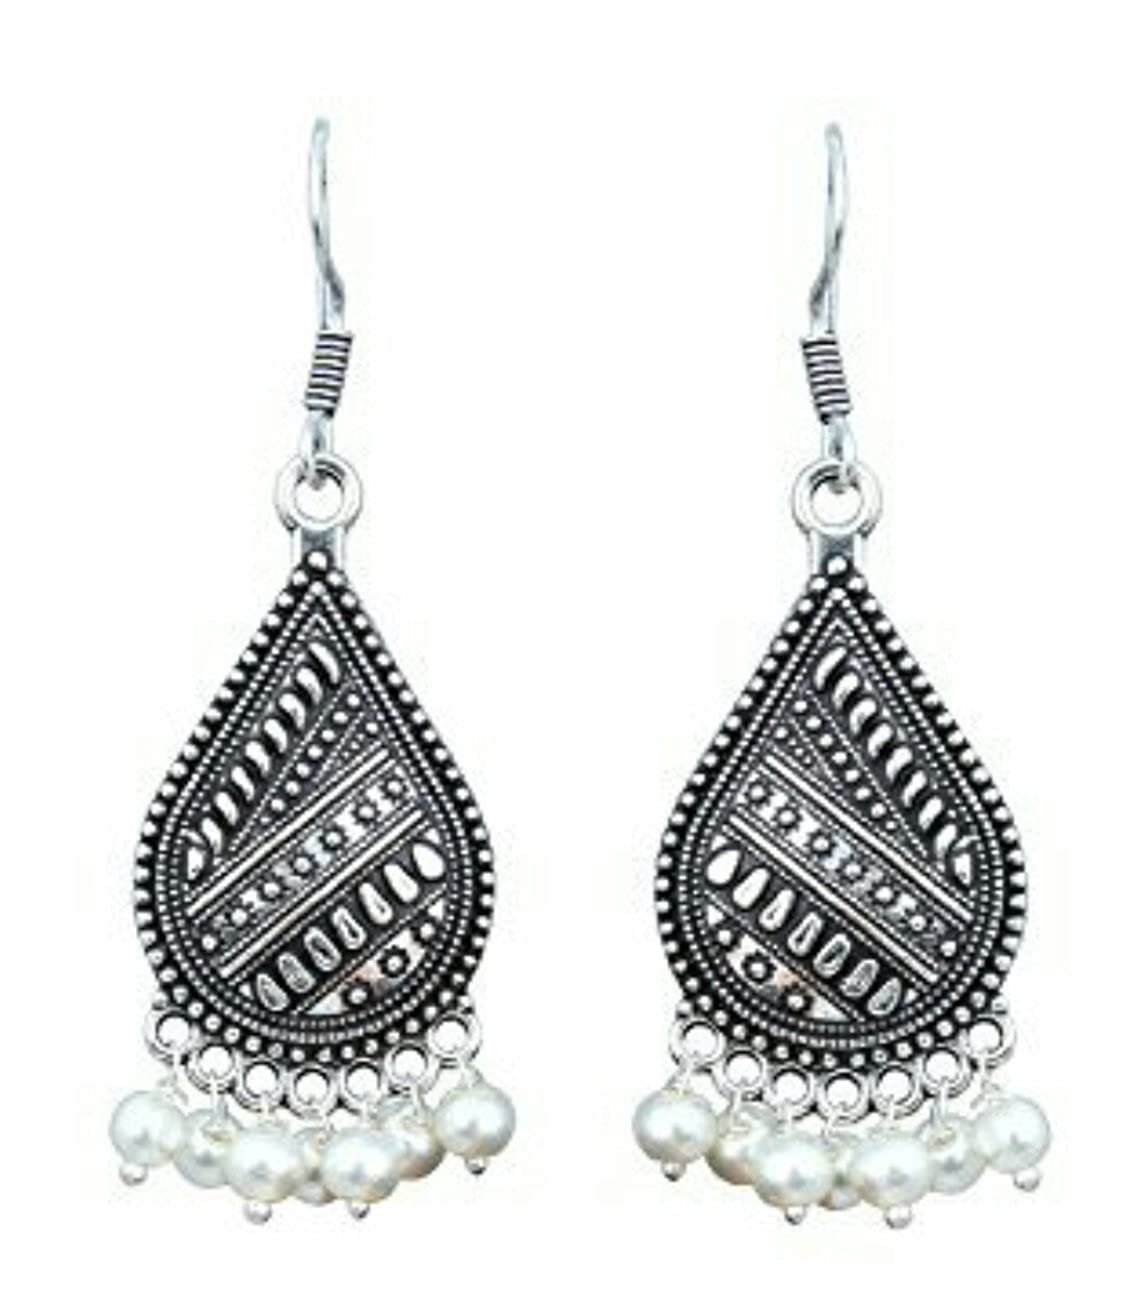 Subharpit White Oxidized Light Weight Traditional Indian Dangle Earrings for Women and Girls